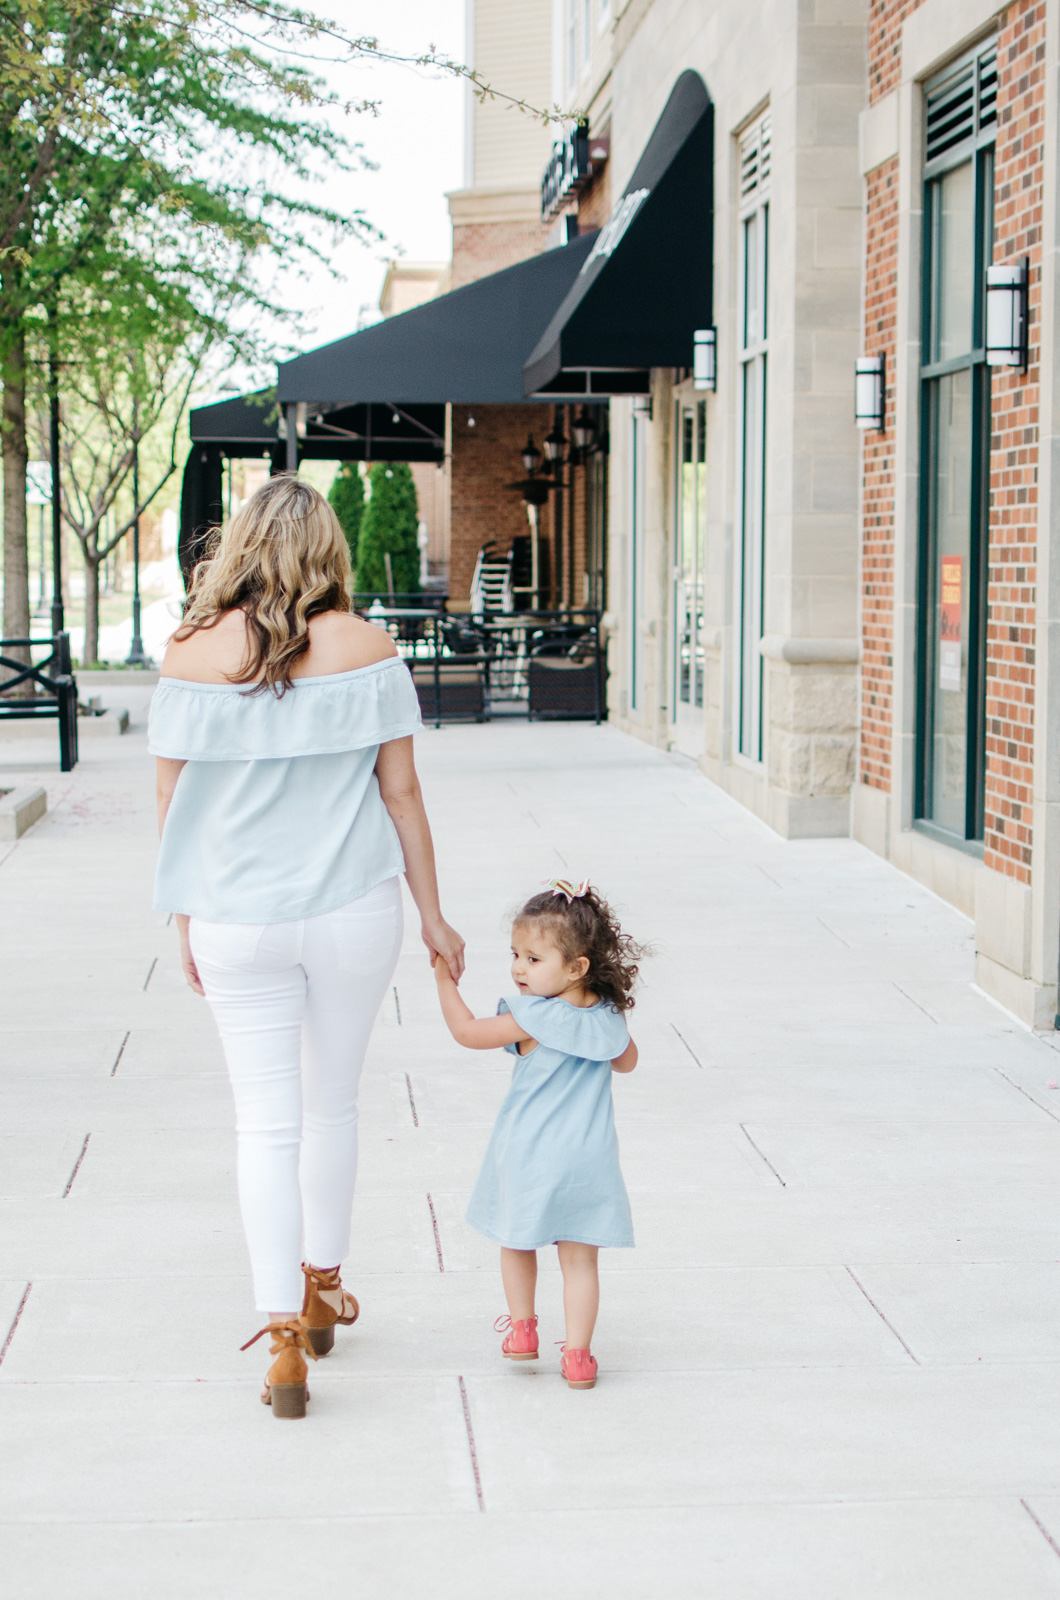 mommy daughter matching outfits spring | For more cute Spring outfit ideas, head to bylaurenm.com!